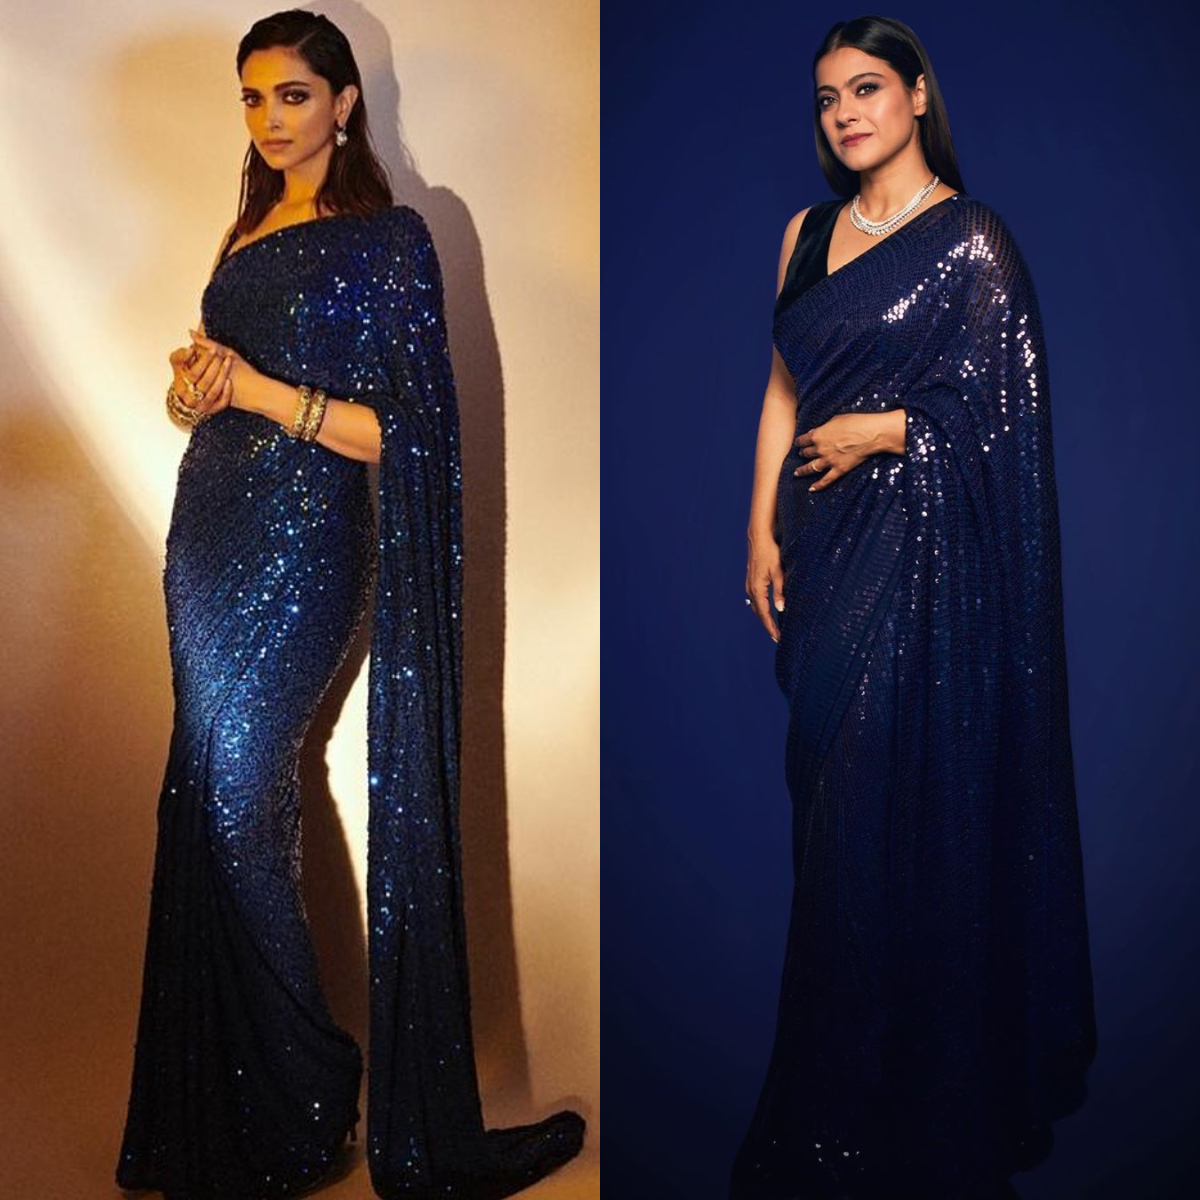 Fashion Faceoff: Deepika Padukone in Sabyasachi or Kajol in Manish Malhotra: Who wore the sequin saree better?